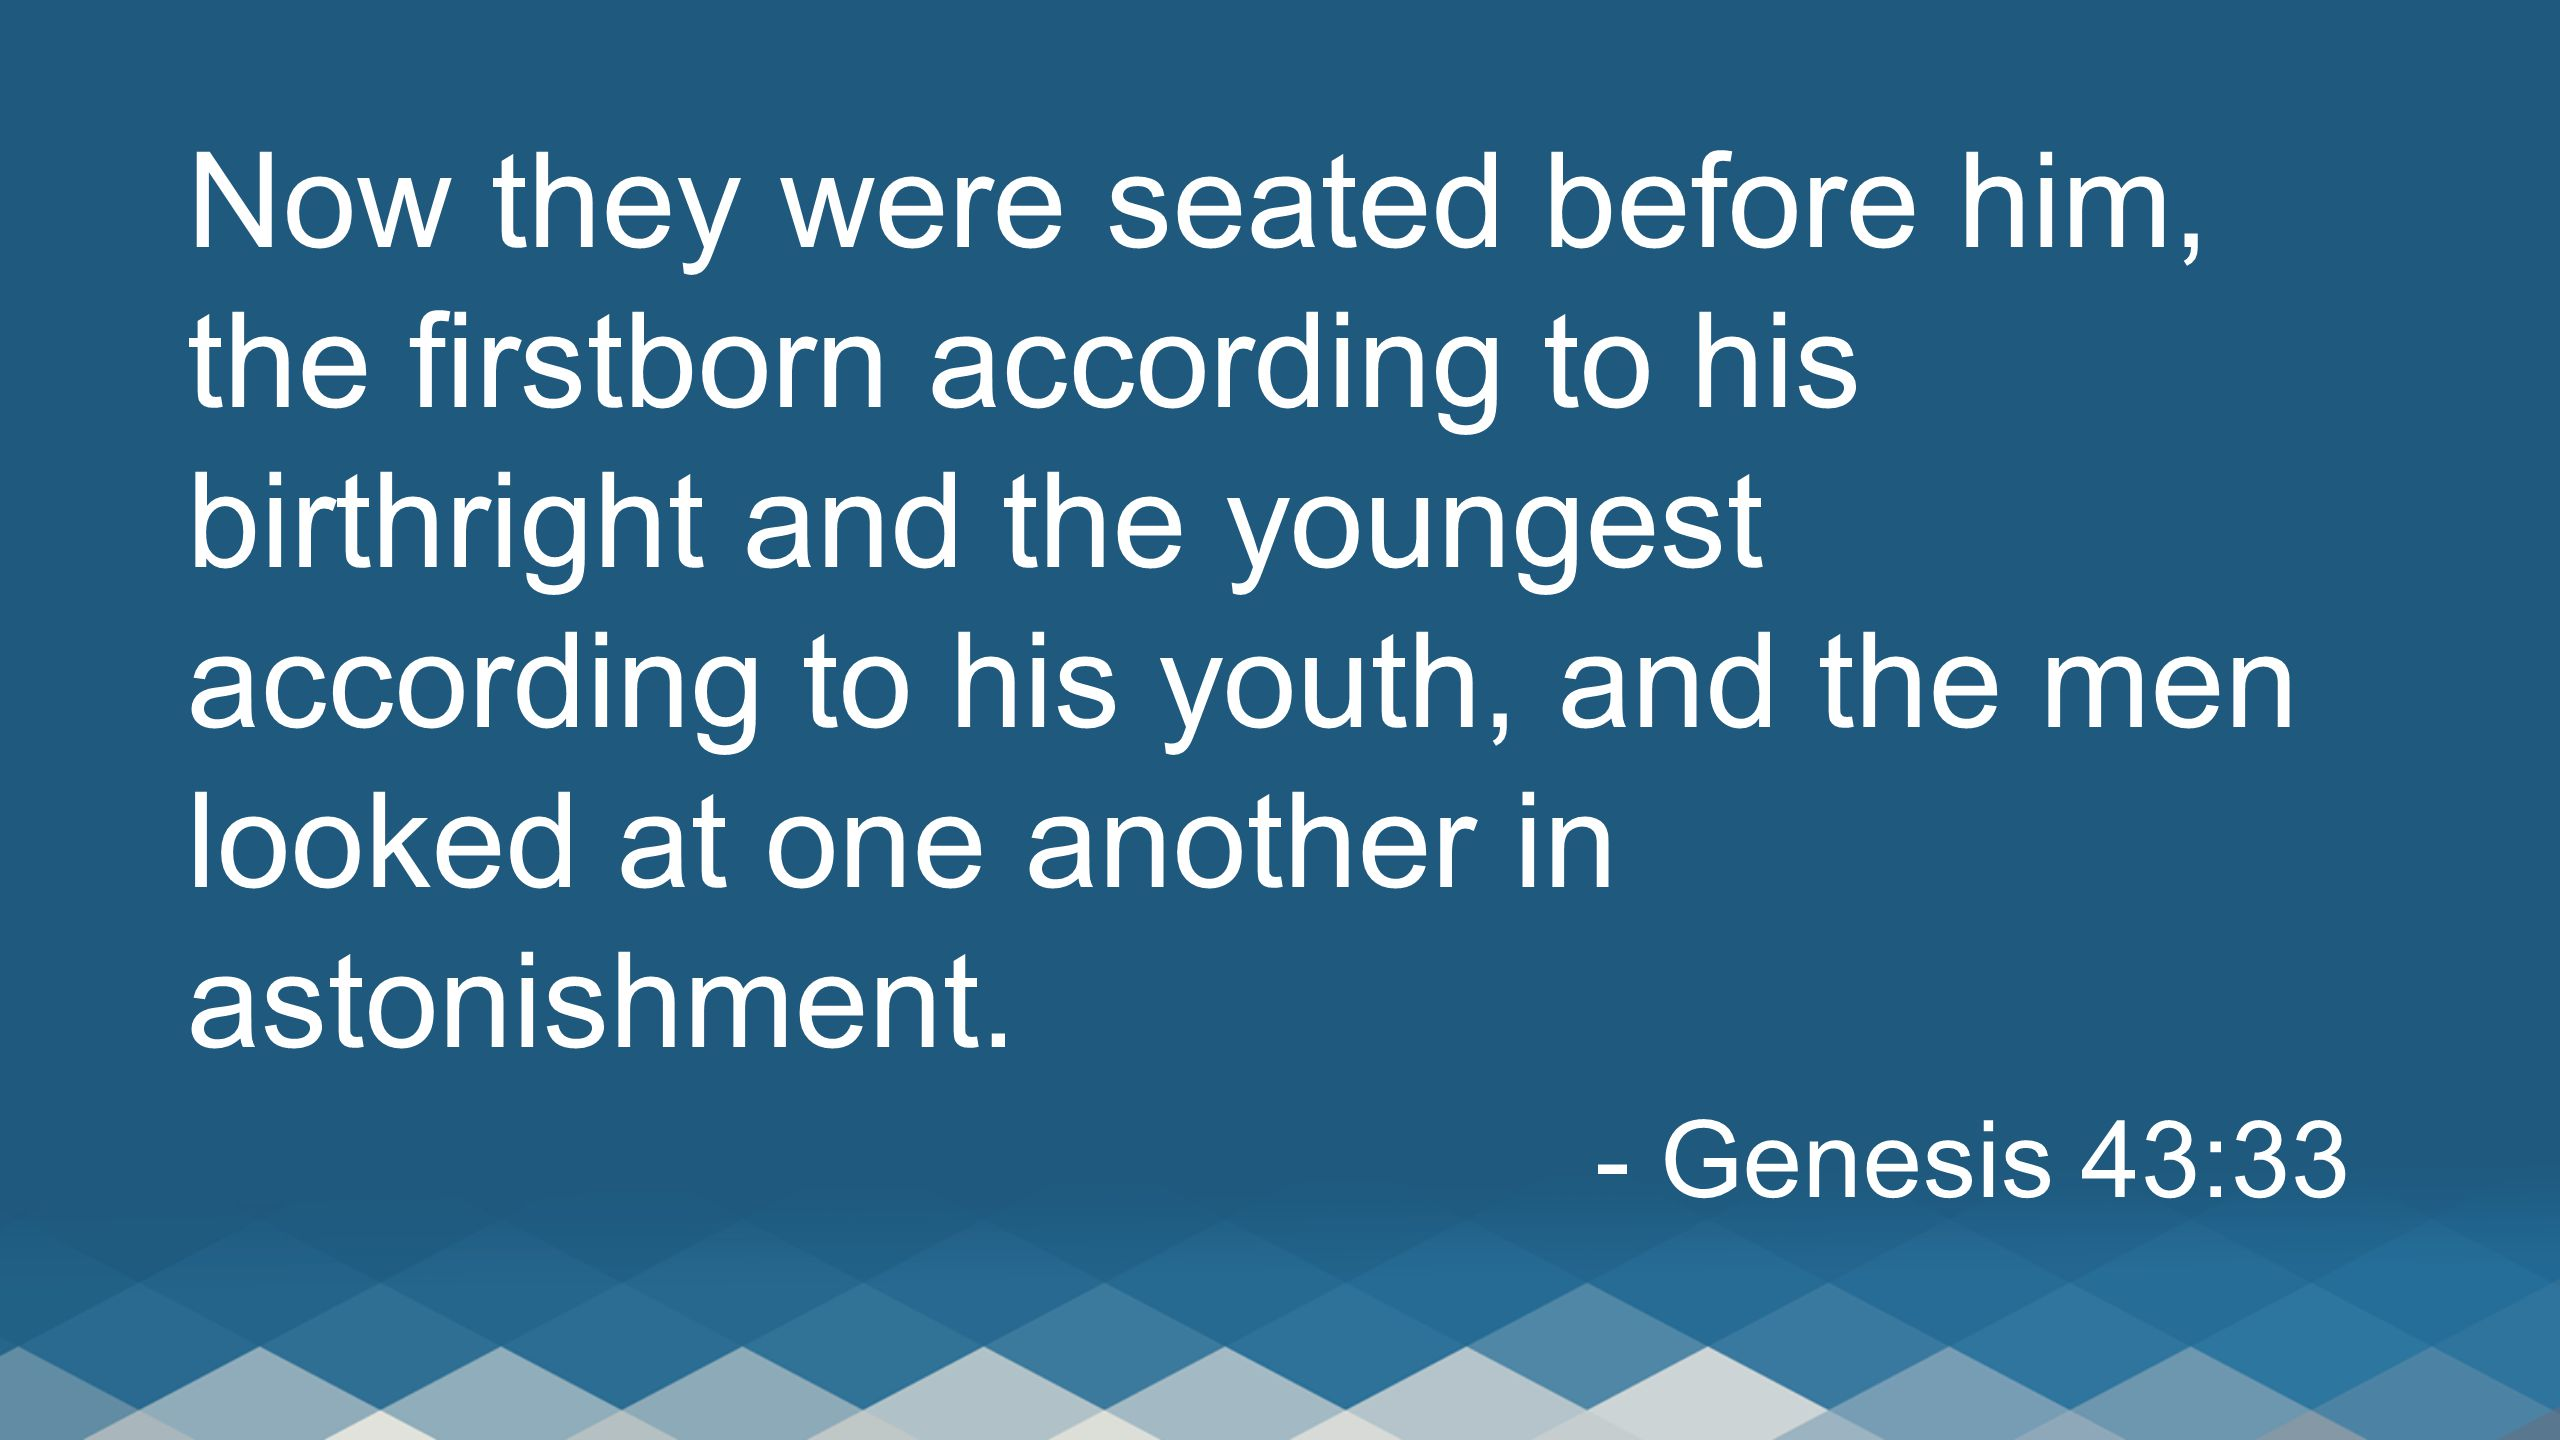 Now they were seated before him, the firstborn according to his birthright and the youngest according to his youth, and the men looked at one another